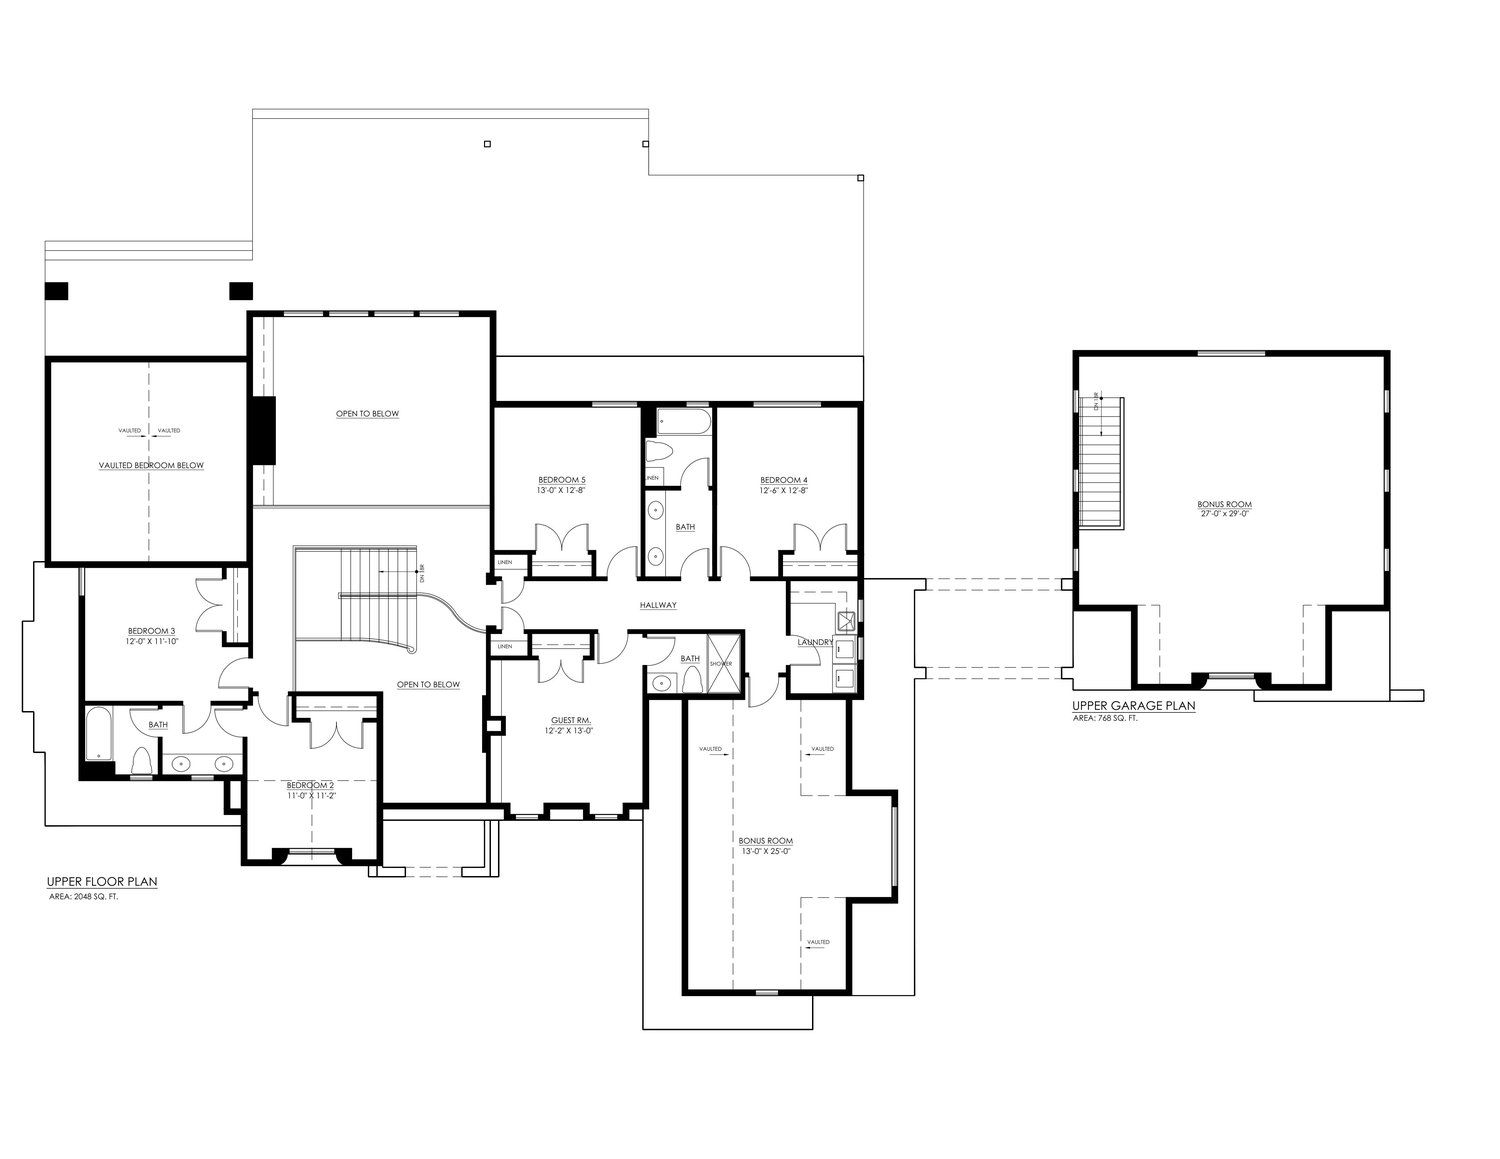 00 All Signature Series Stock Plans Are In Us Dollars Usd Plan 16092 Style Farmhouse Style House Plans Craftsman Style House Plans Home Design Floor Plans